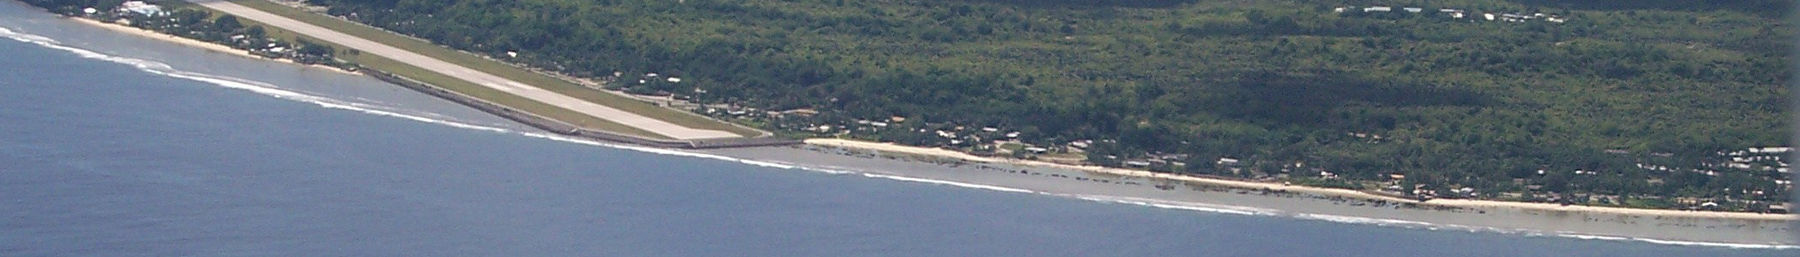 Nauru banner Coastline and runway.jpg